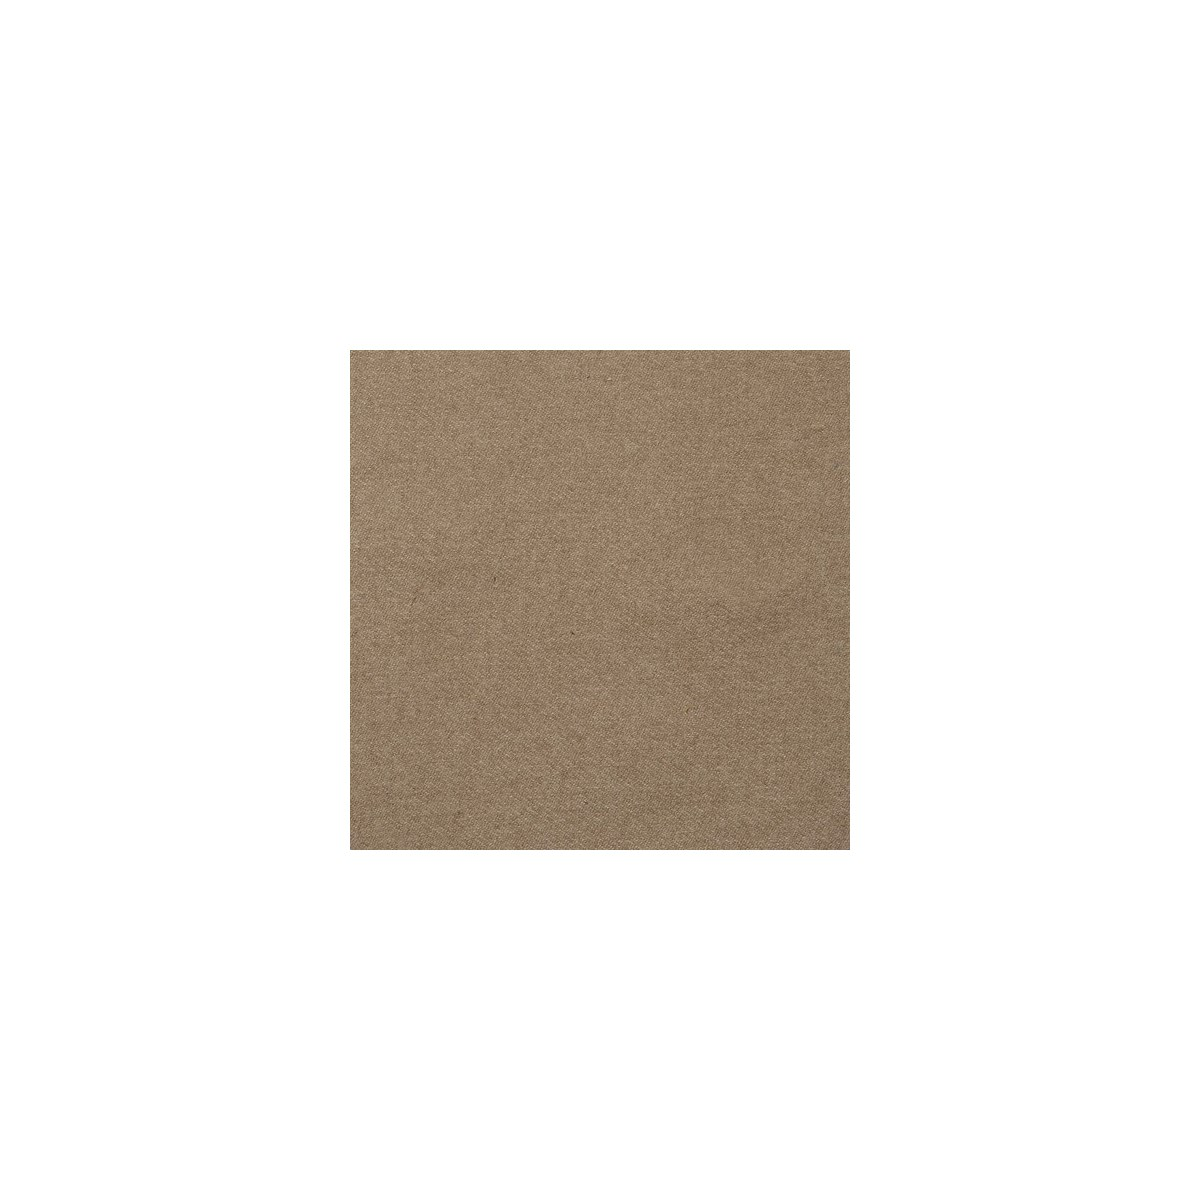 Burgess - Taupe - Fabric By the Yard